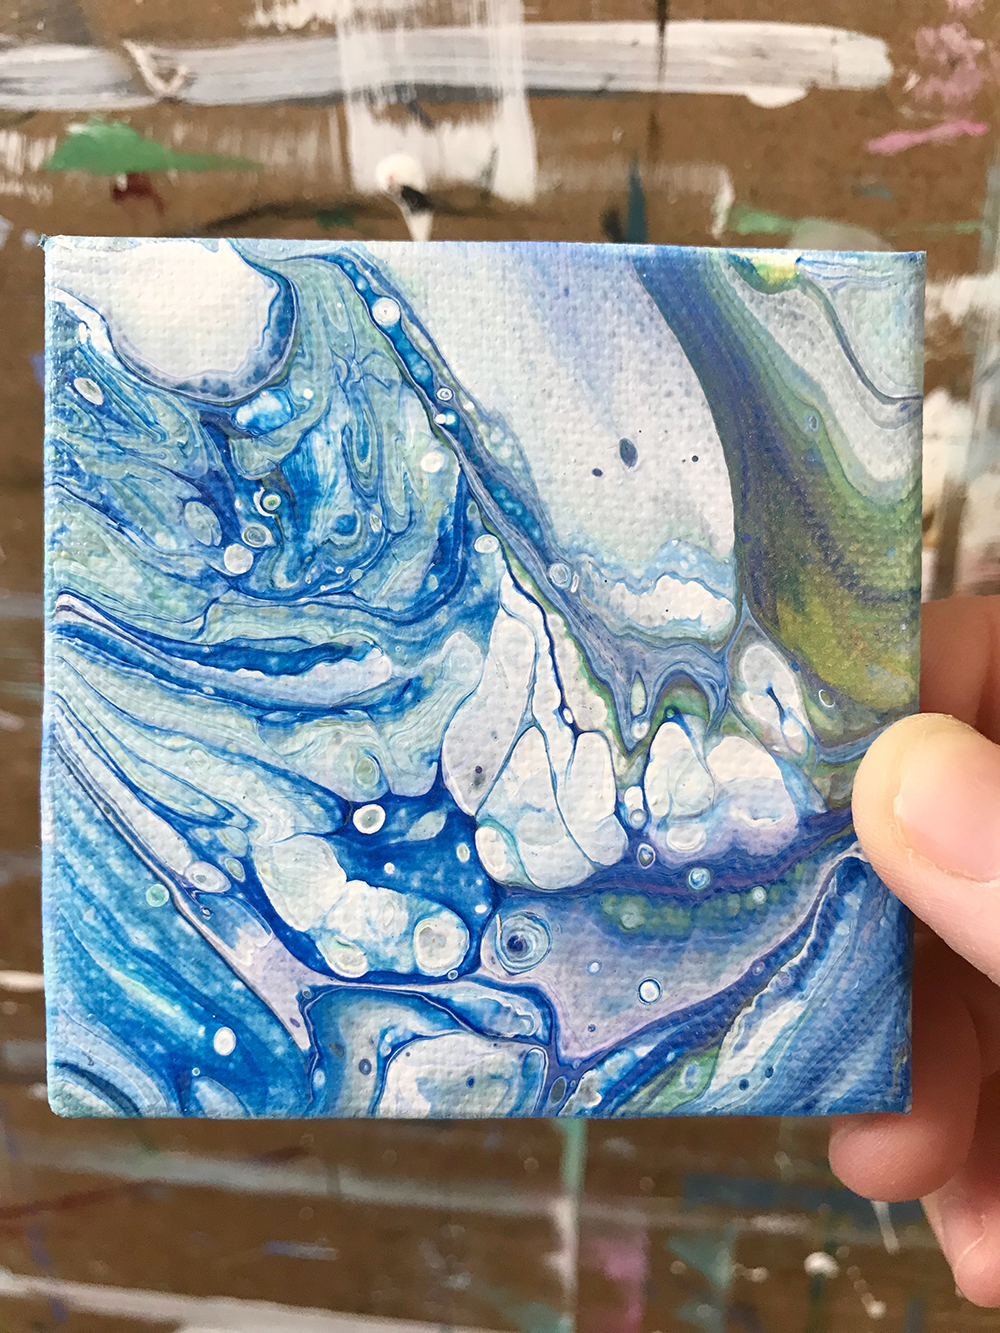 "62/100. The 100 Day Project. 3""x3"" Acrylic on canvas. Look at how tiny and cute this is!"